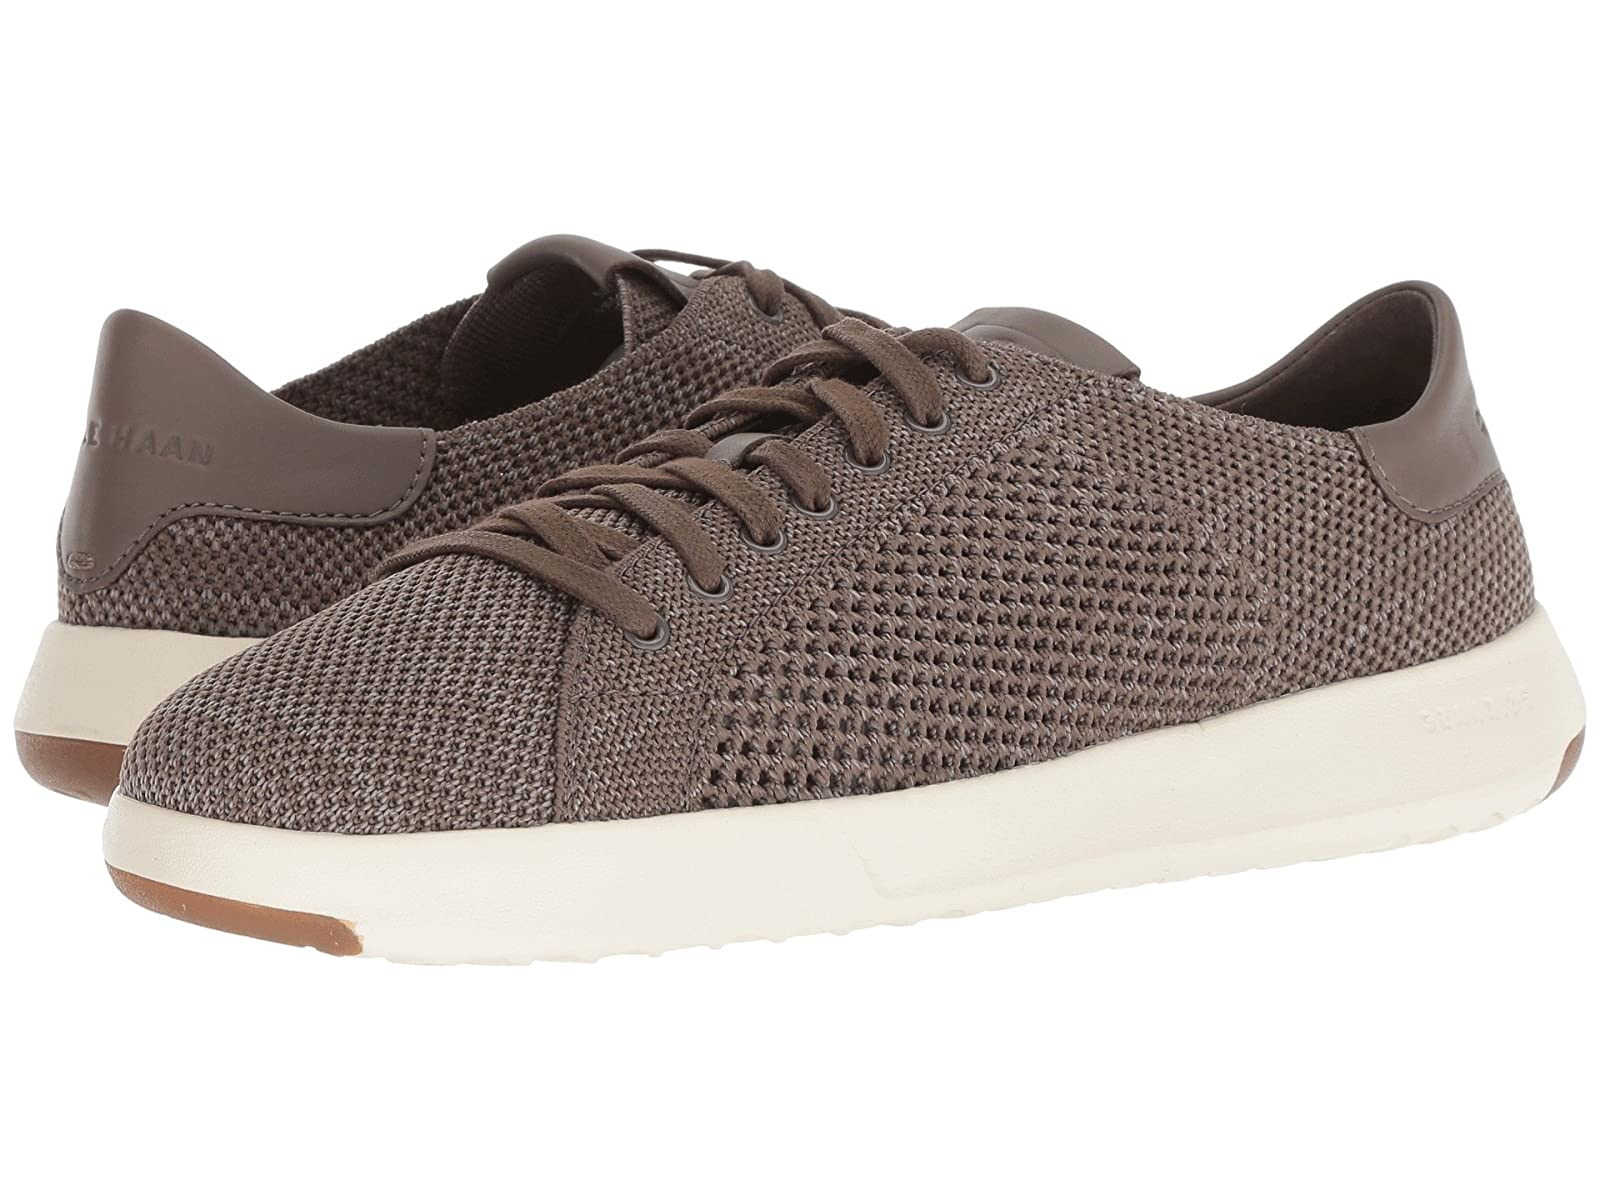 Cole Haan Grandpro Tennis Stitchlite SneakerAtmospheric grades have affordable shoes